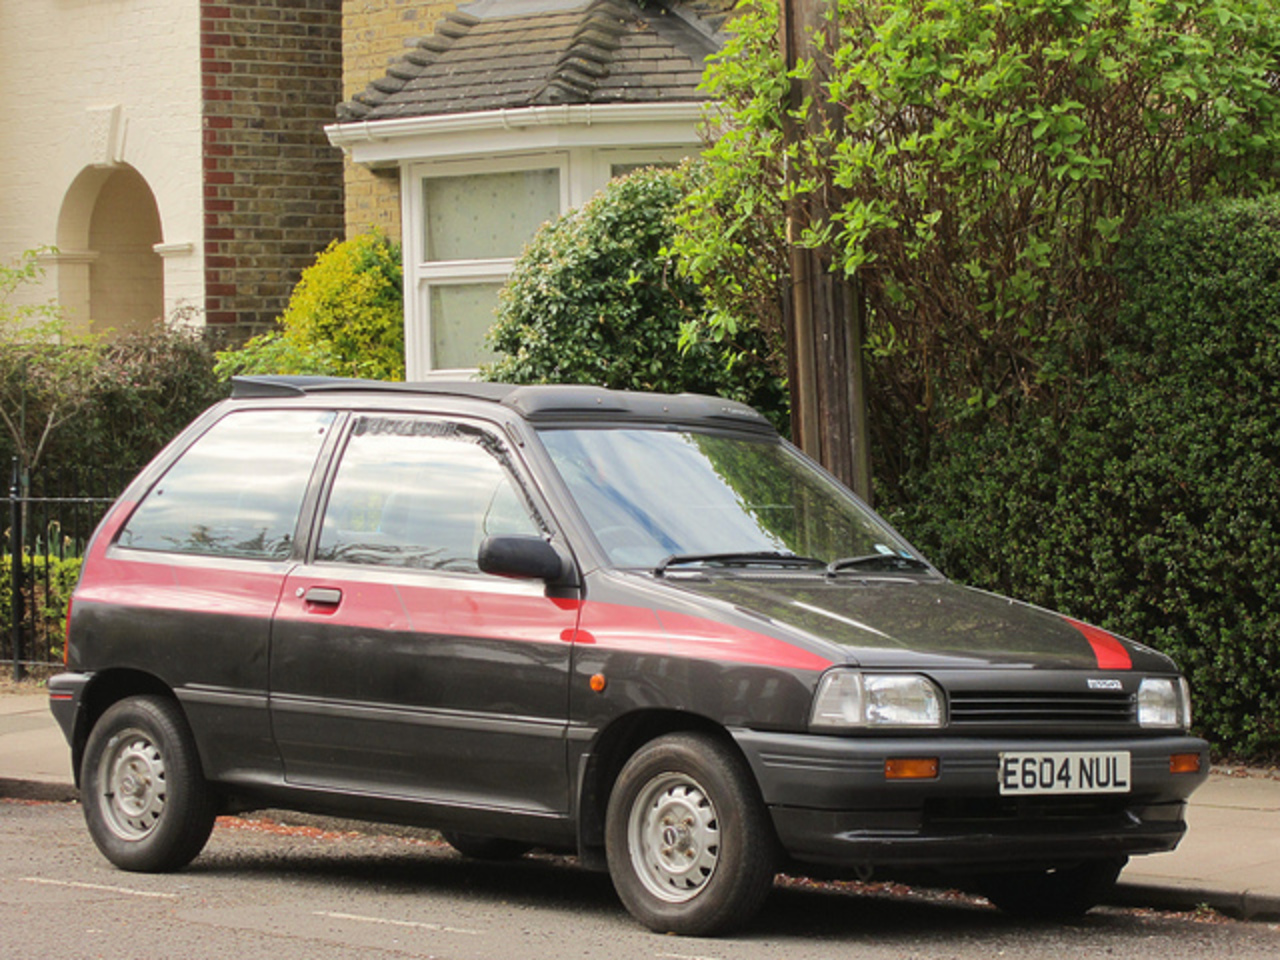 1988 Mazda 121 LX. | Flickr - Photo Sharing!